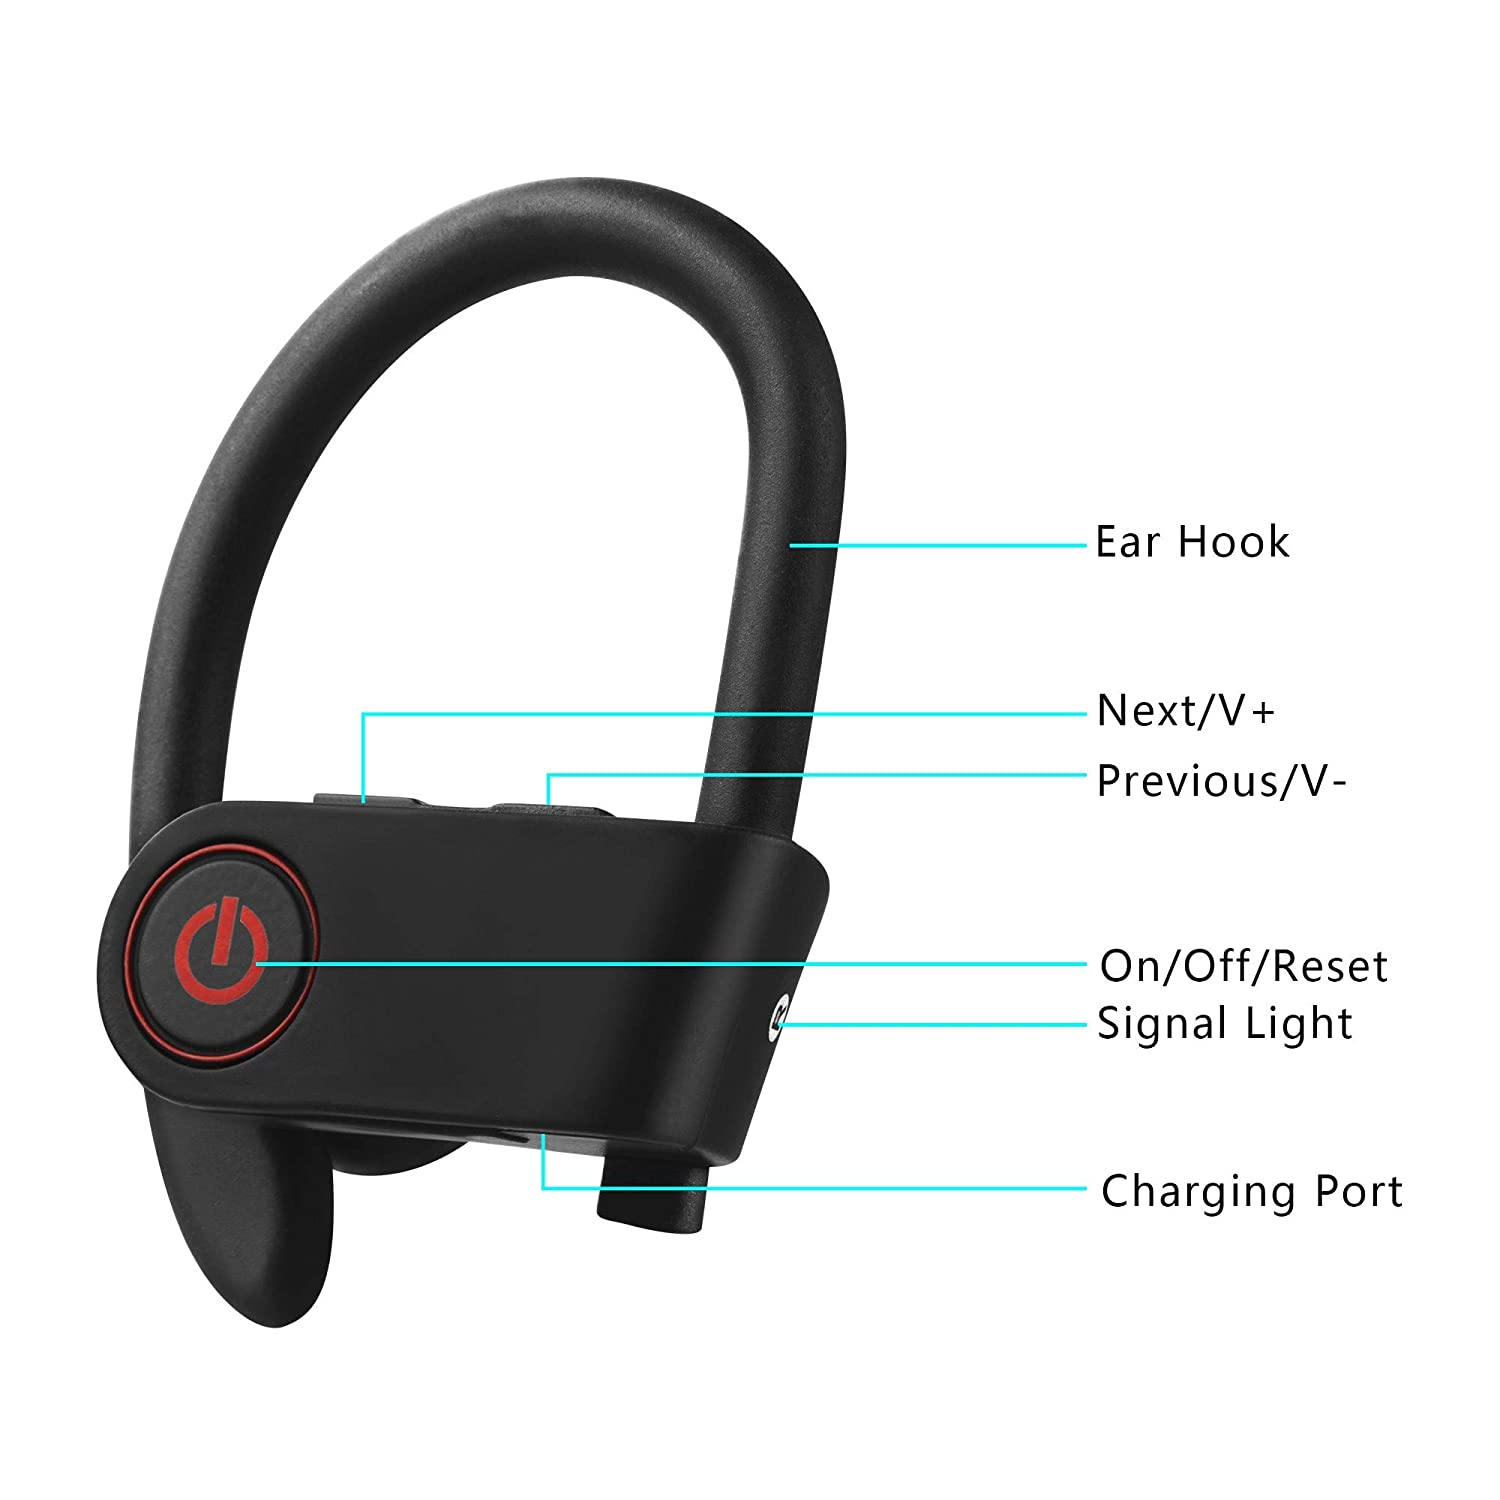 Wireless Bluetooth Headset Wireless Earbuds Sweatproof Sports Headphones with Charging Case Mini Size HD in-Ear Noise Canceling Earphon Phone Smart-M4-2